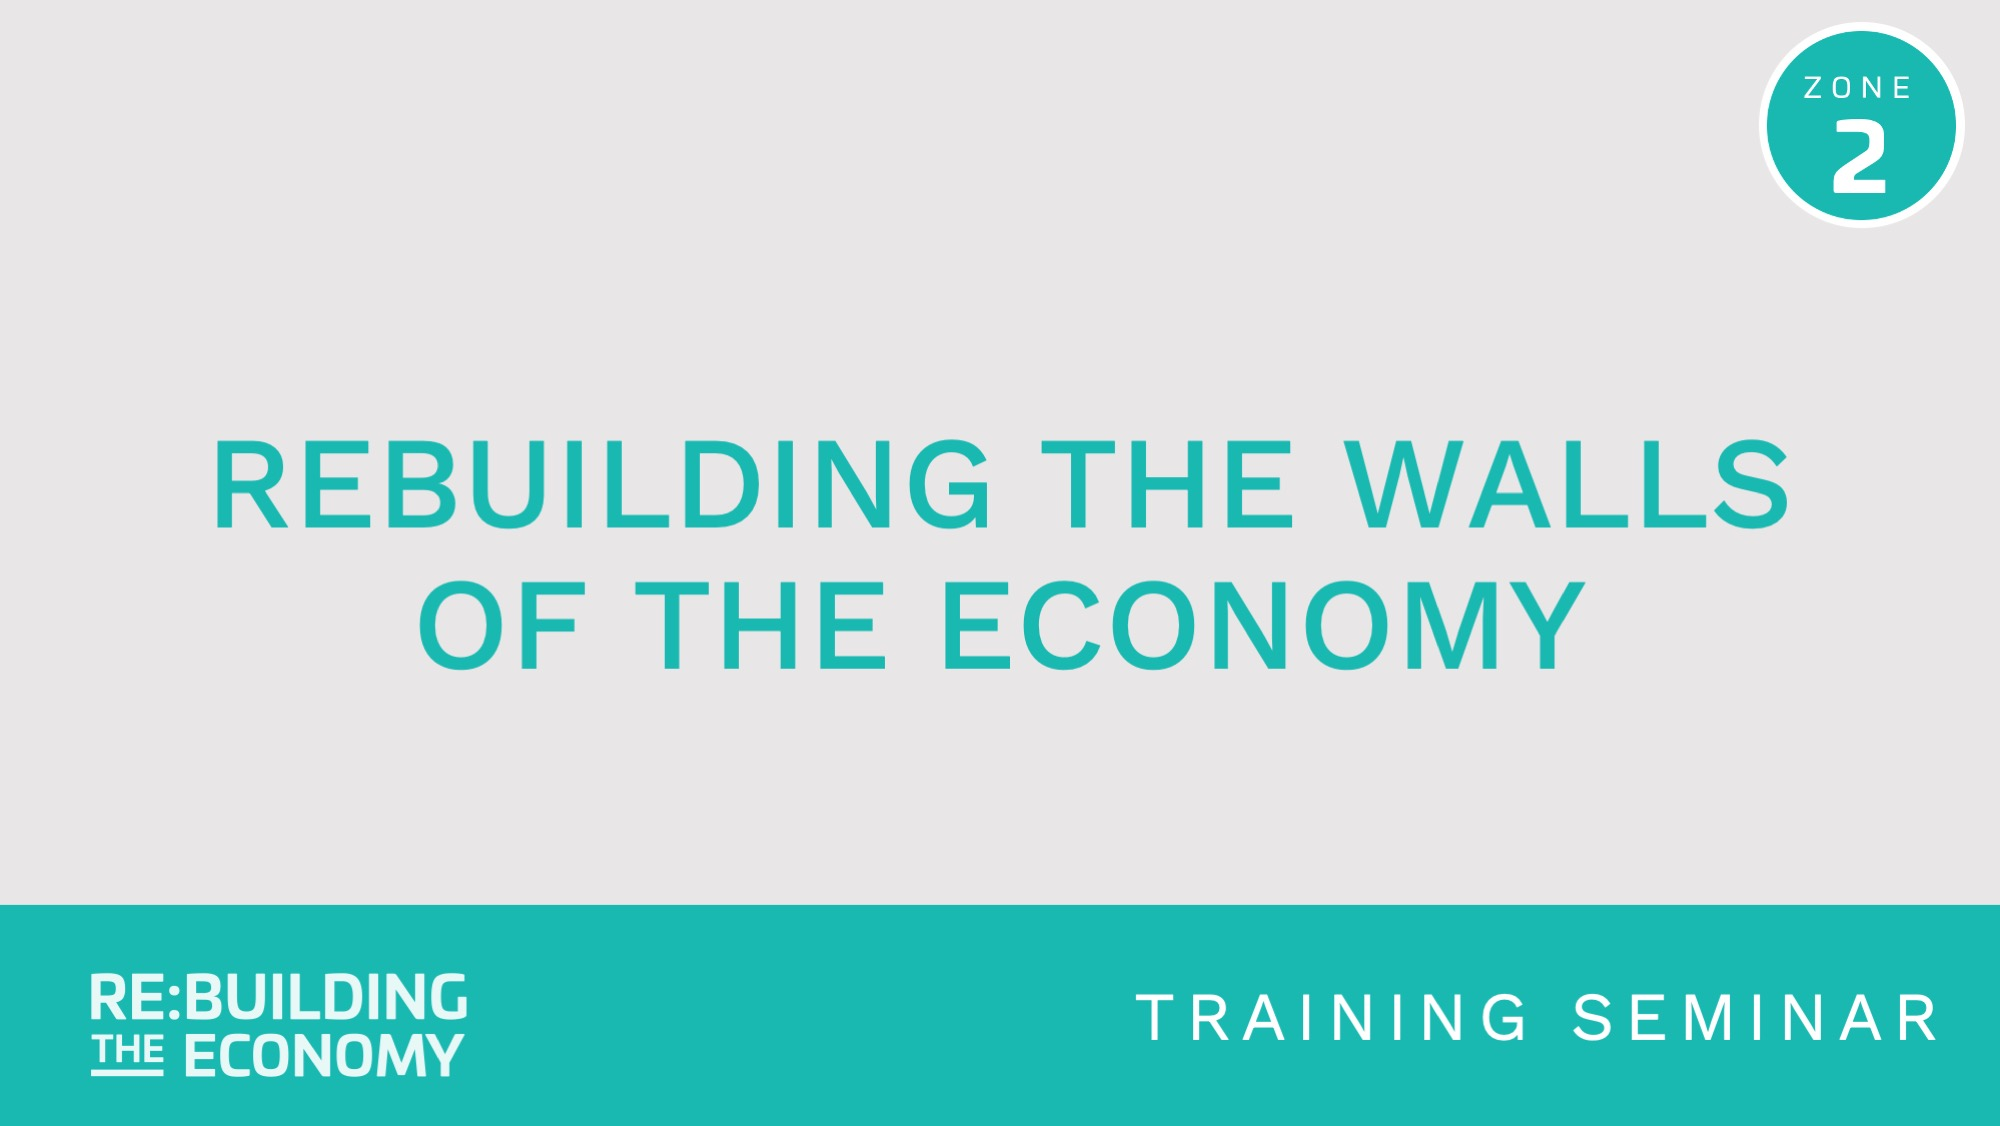 Rebuilding the economy course